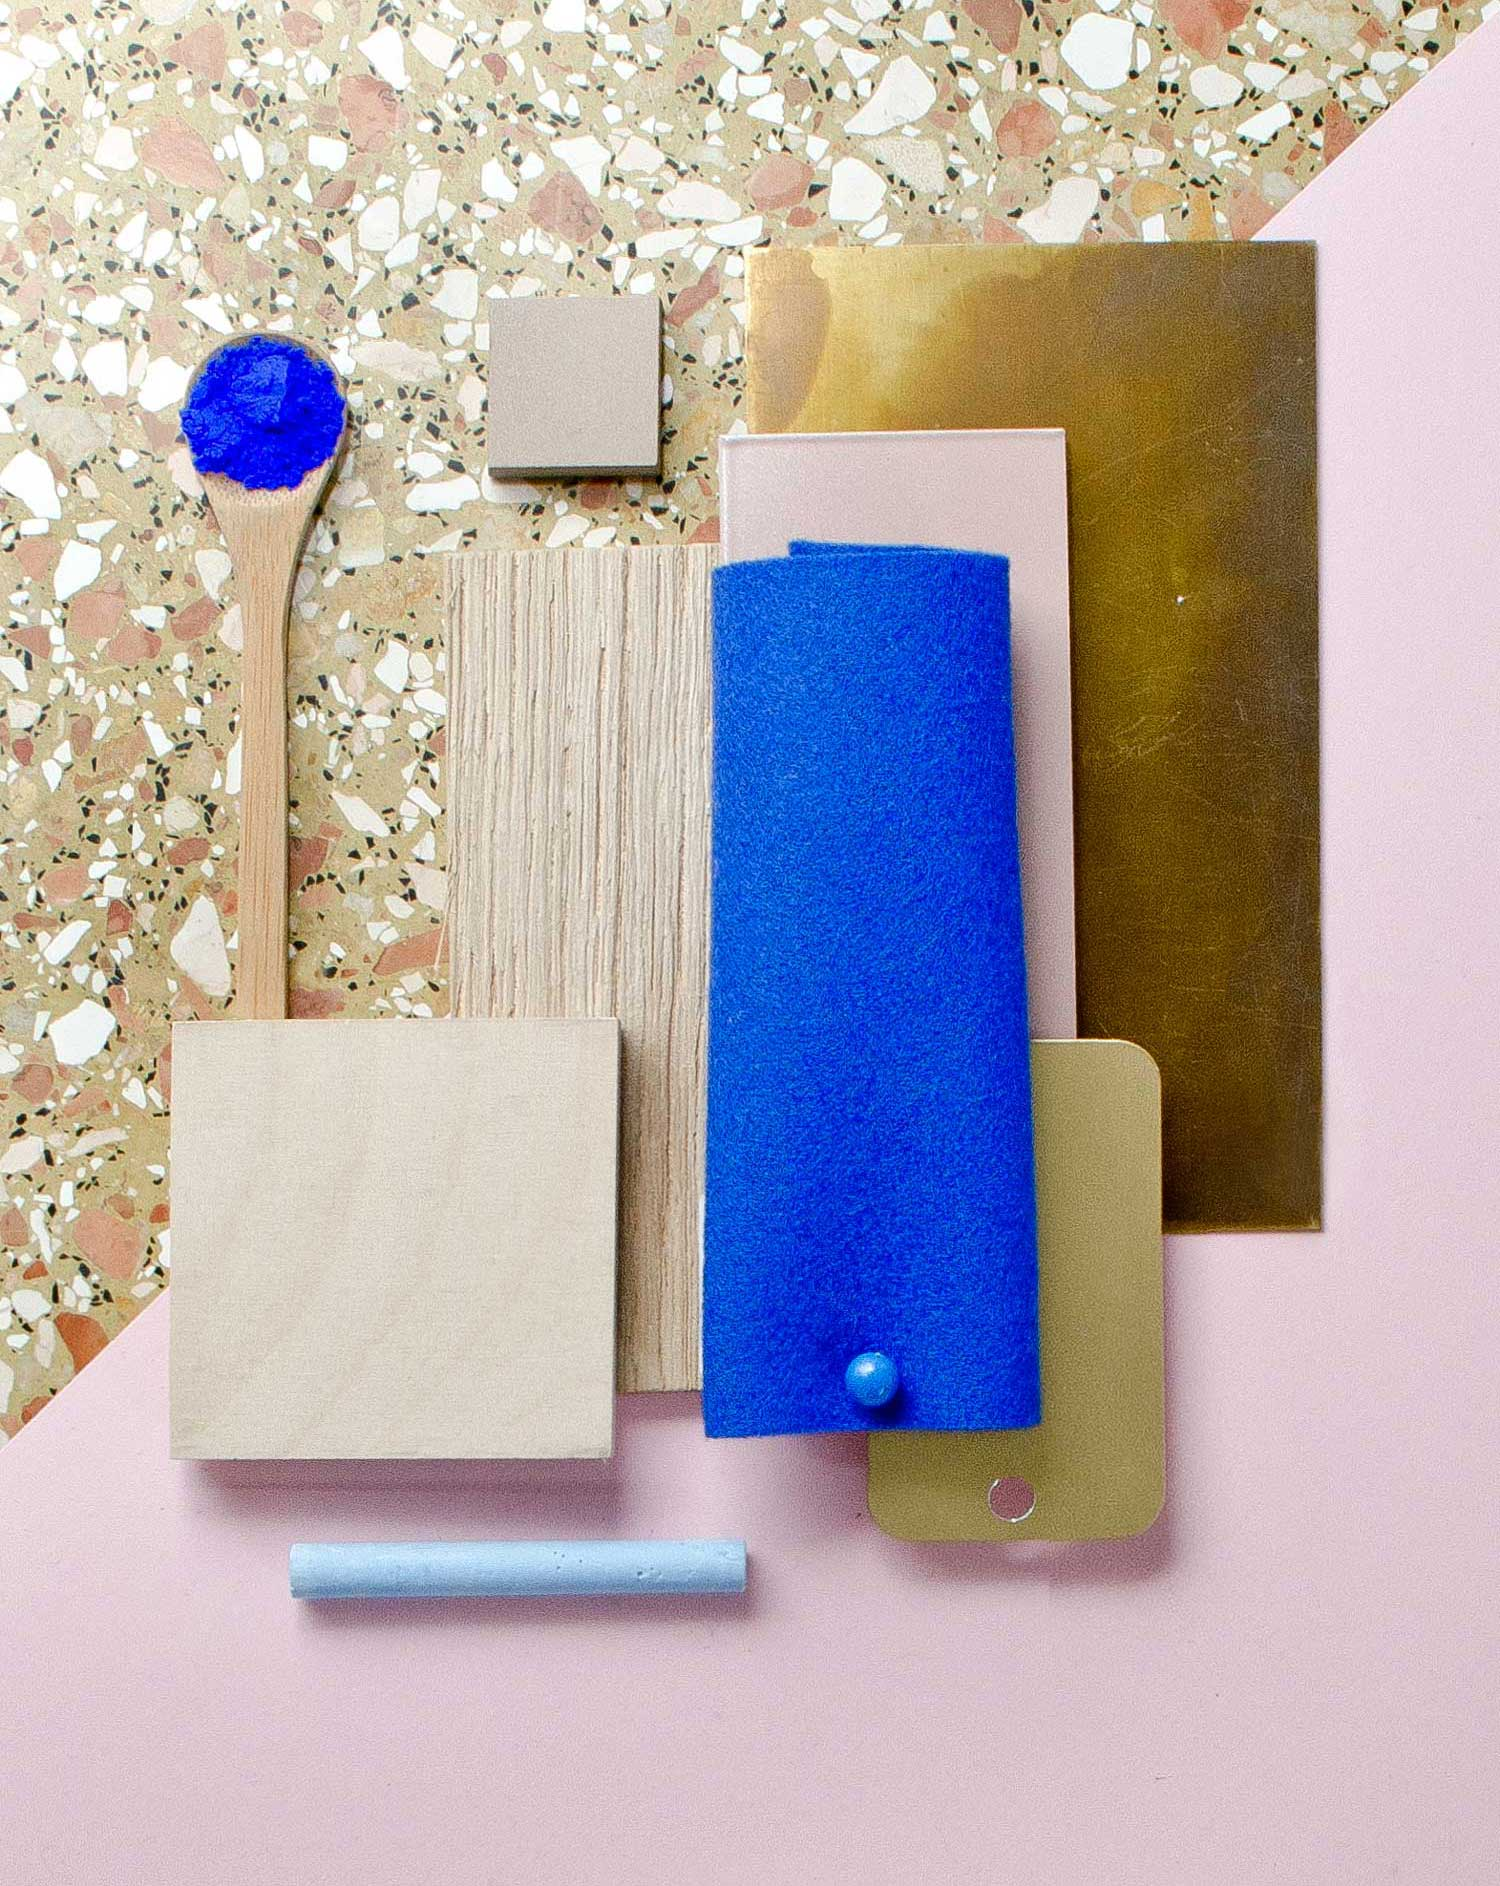 Materials by Studio David Thulstrup | Yellowtrace